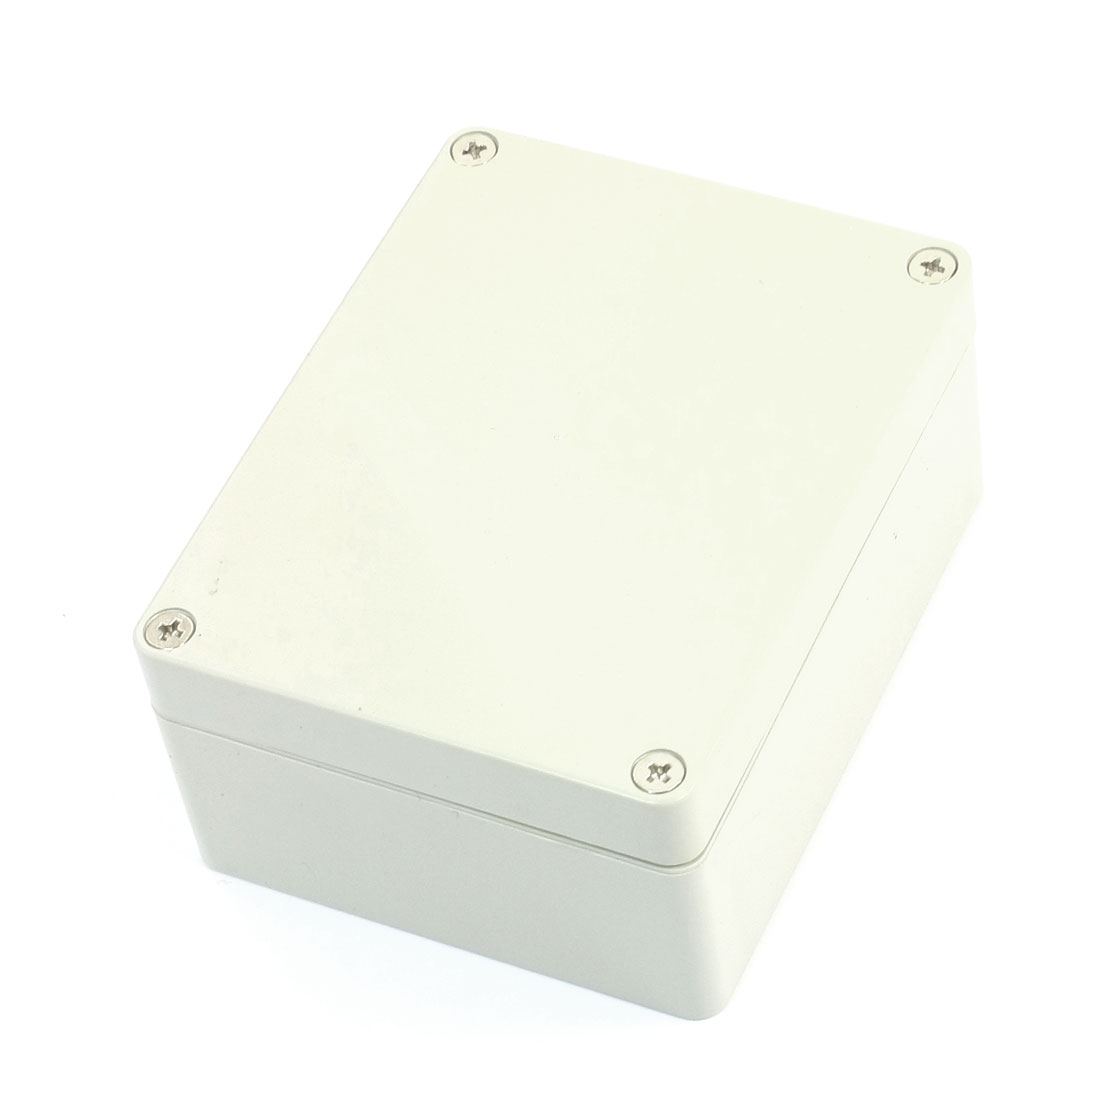 115x90x55mm Waterproof Plastic Power Project Case DIY Junction Box